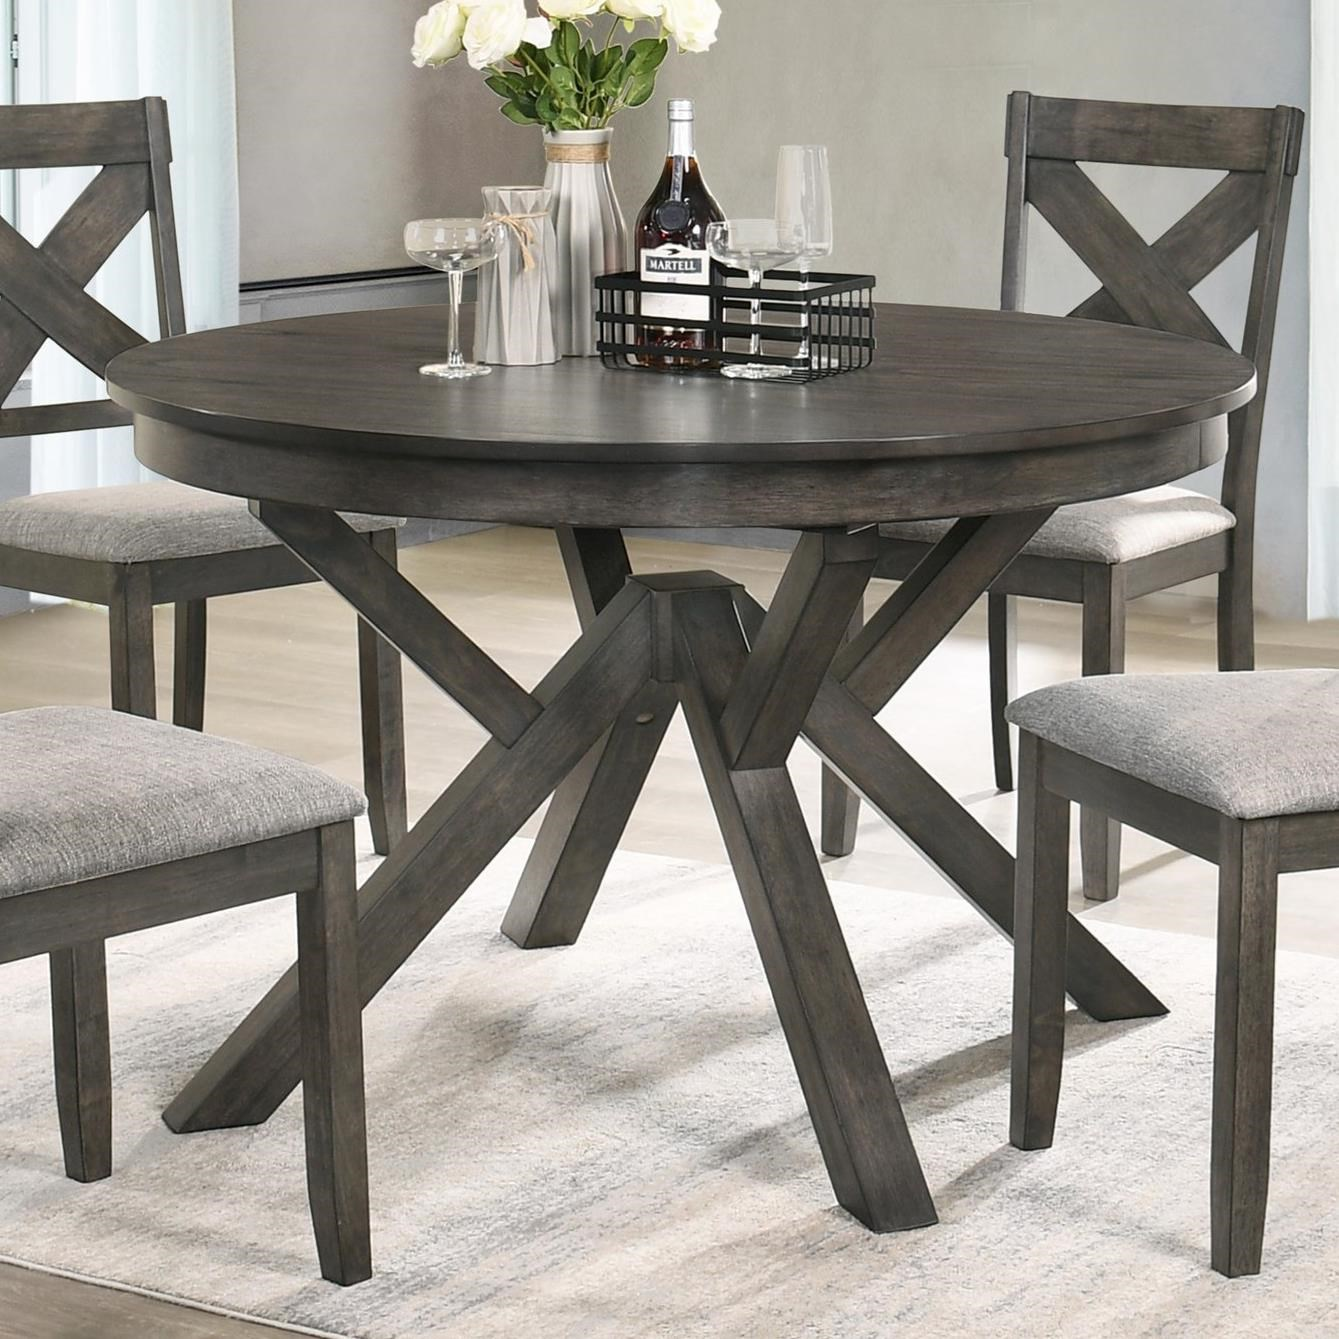 Gulliver Round Dining Table by New Classic at Rife's Home Furniture